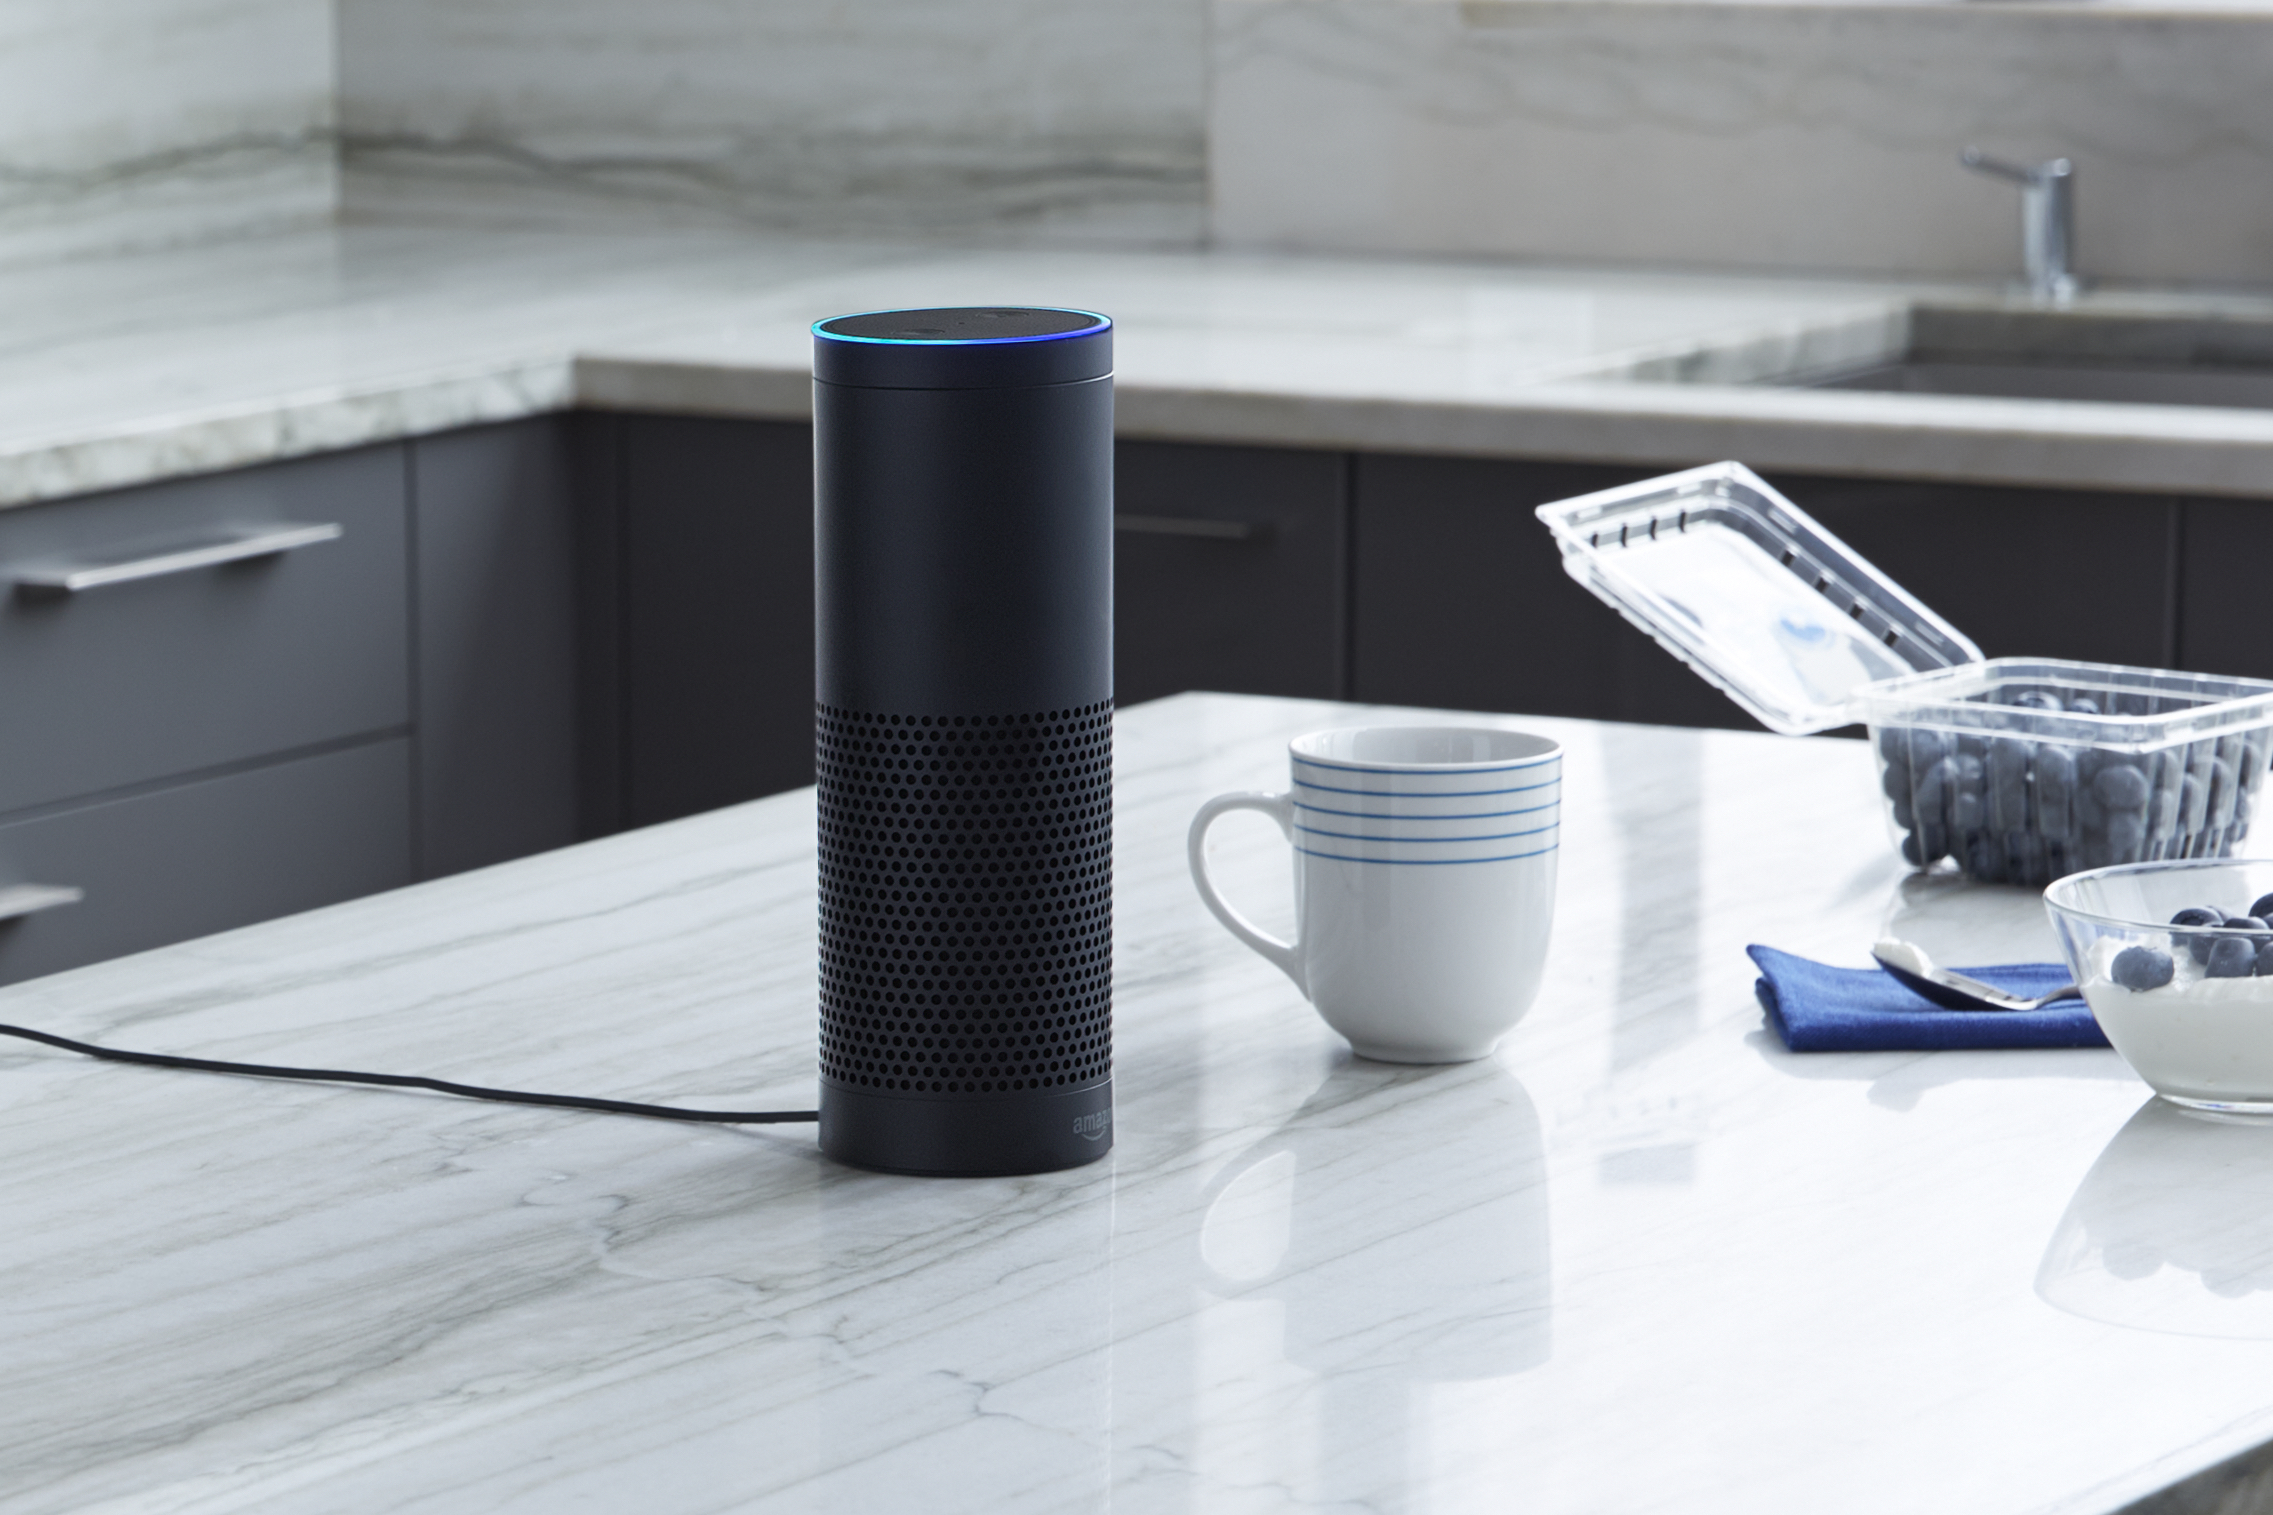 Do \'smart cities\' begin with smart homes? - Curbed